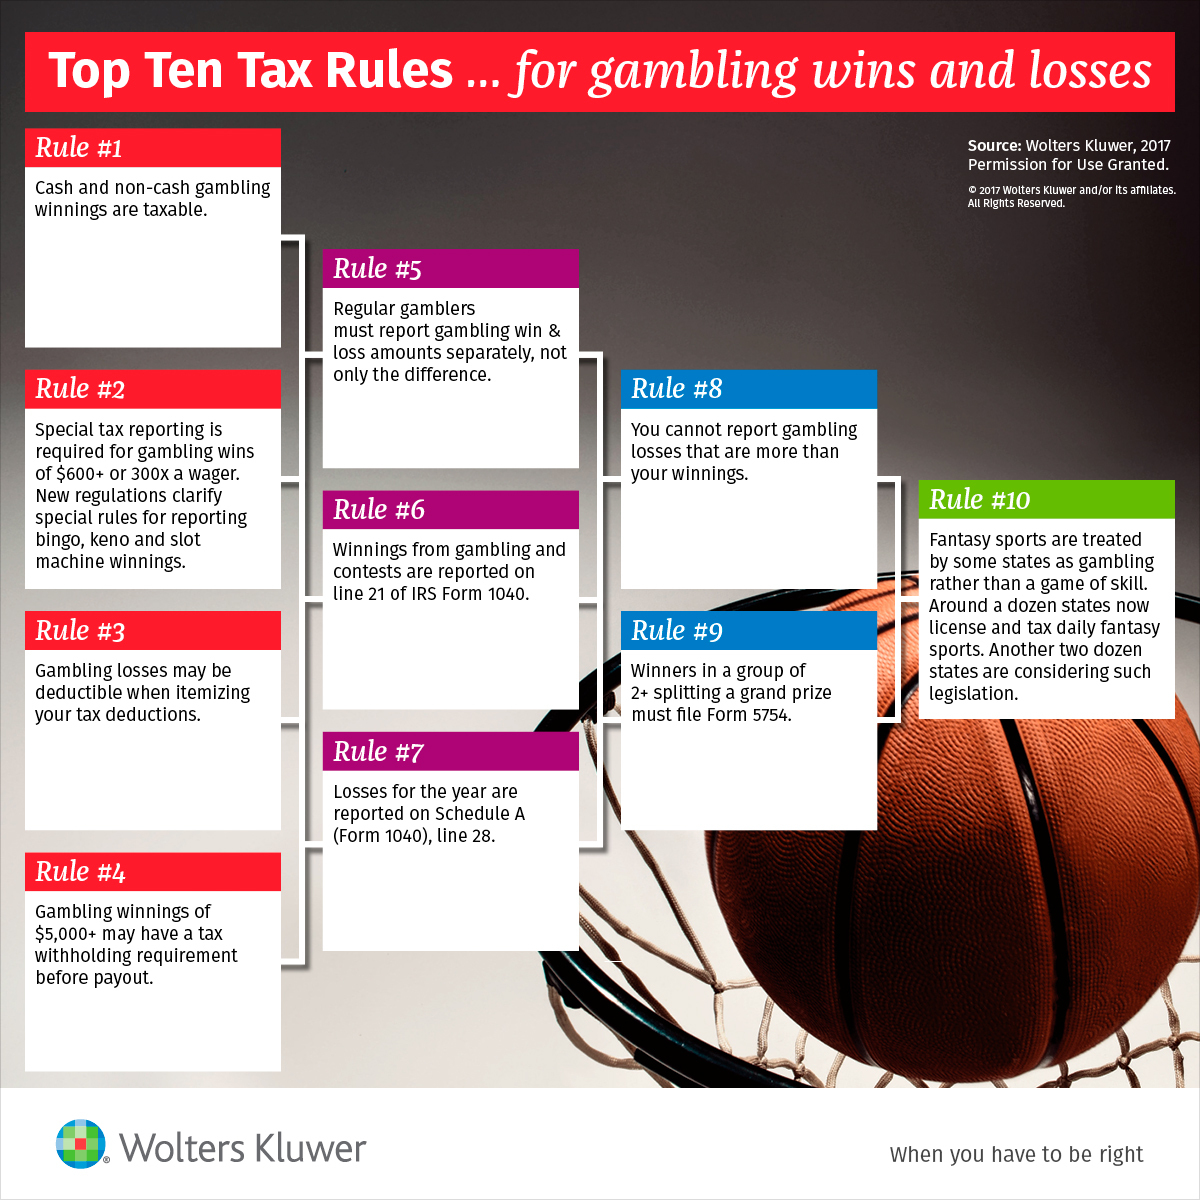 Top 10 Tax Rules for Gambling Wins and Losses from Wolters Kluwer Tax & Accounting